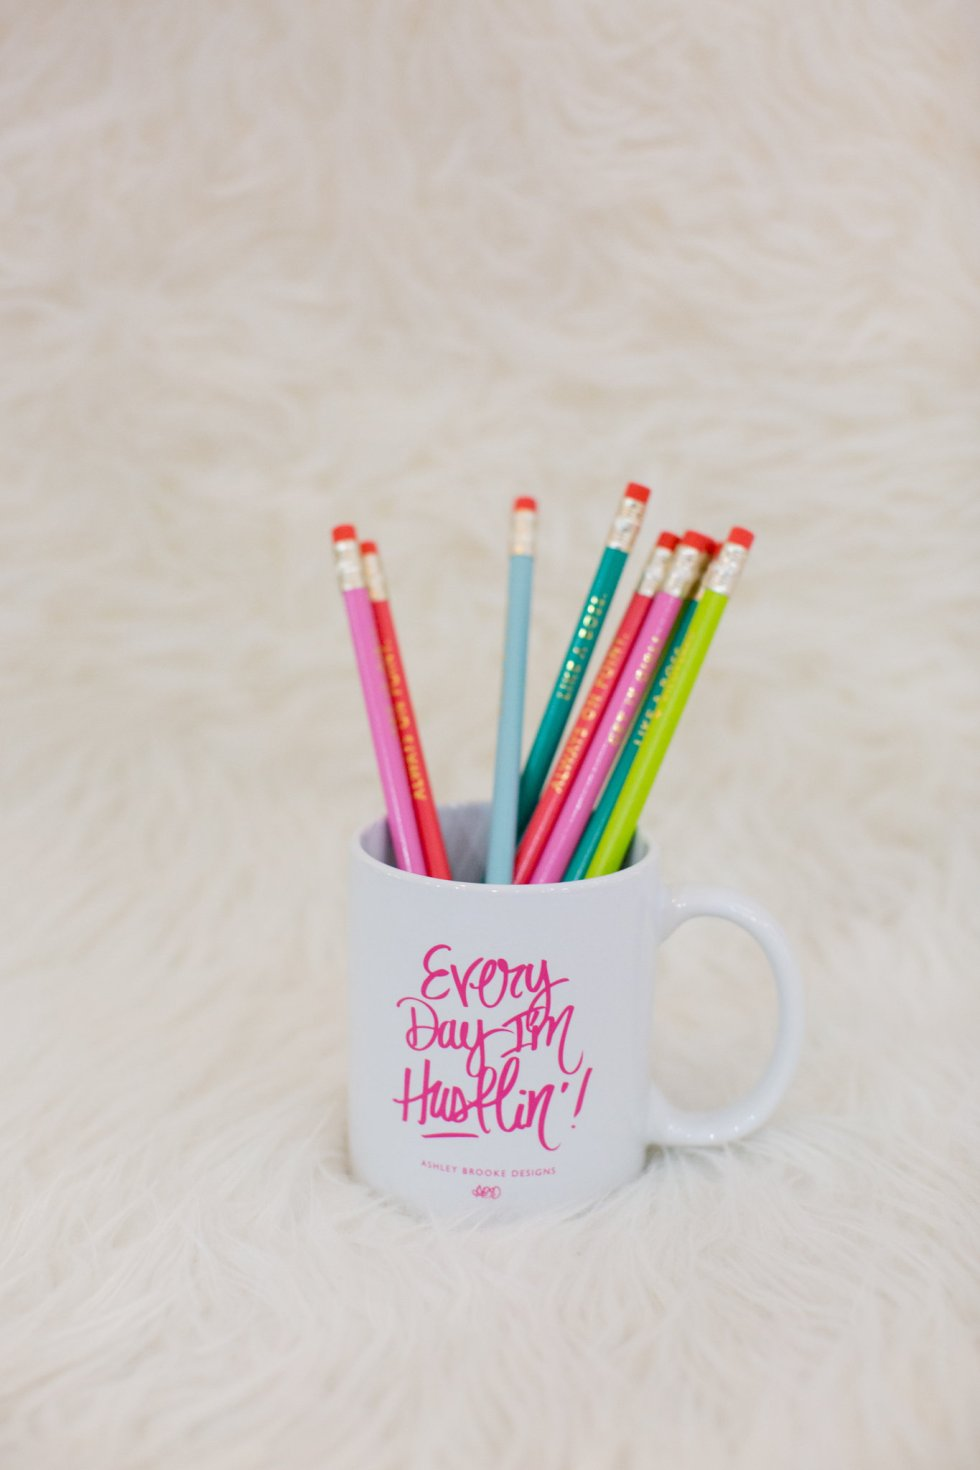 Blog Planning with Ashley Brooke Designs - I'm Fixin' To - @mbg0112